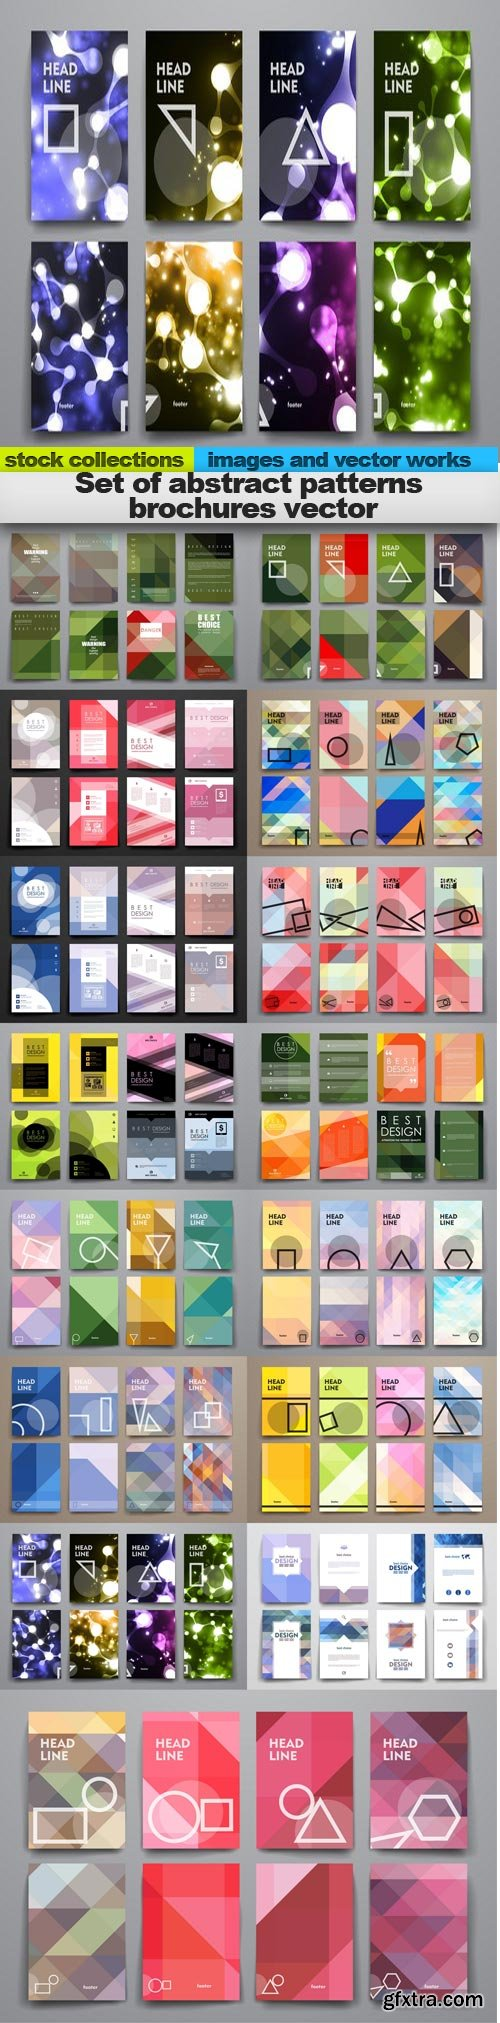 Set of abstract patterns brochures vector, 15 x EPS